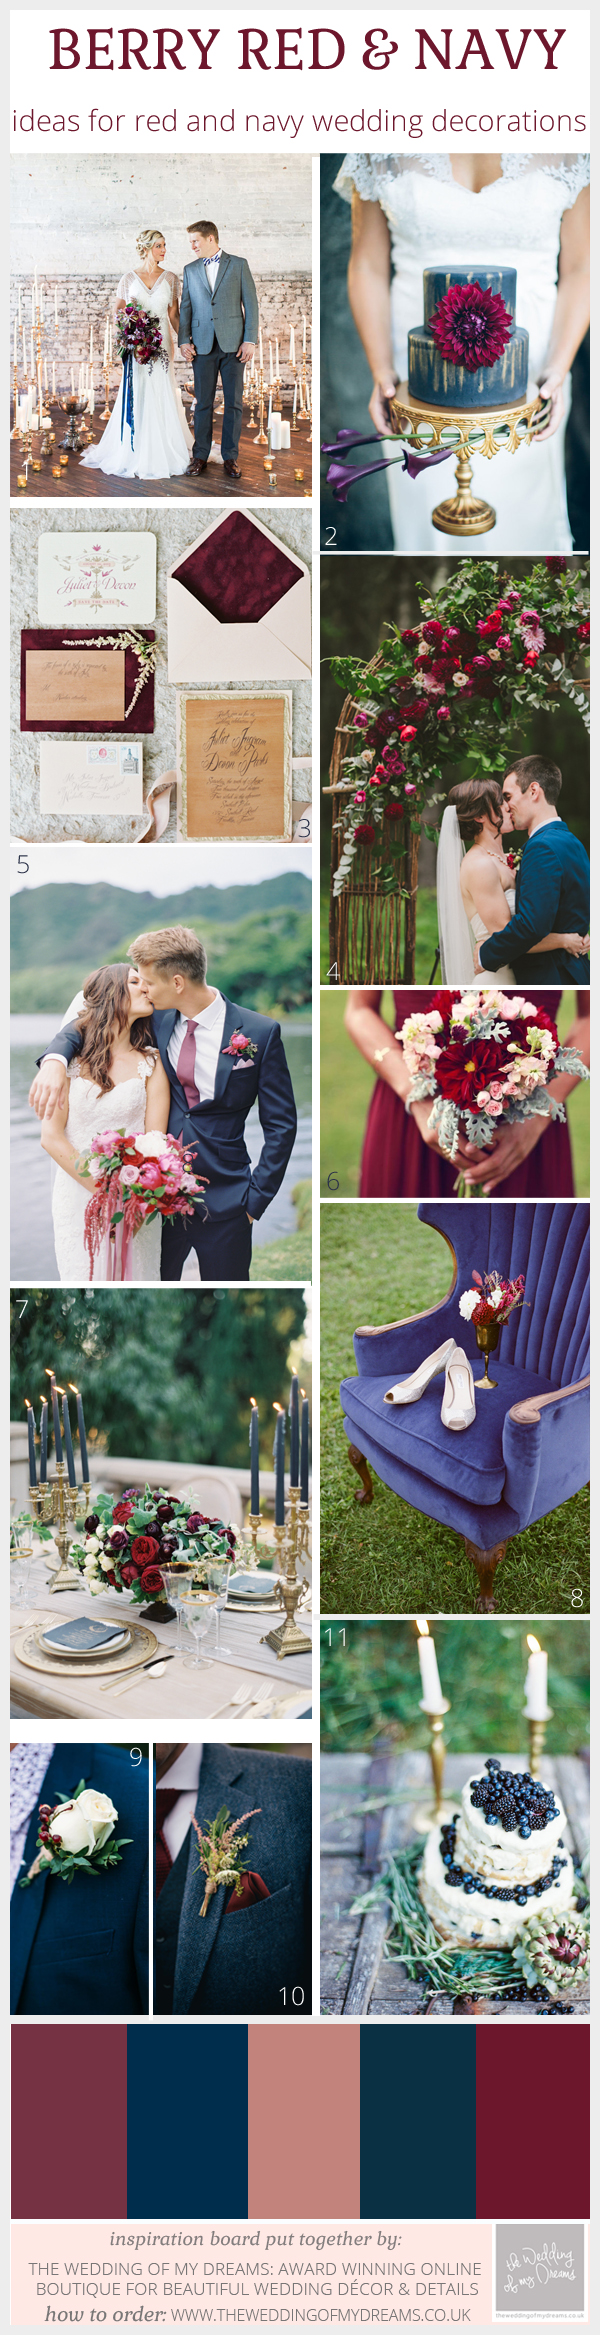 Berry red and navy wedding decorations and ideas